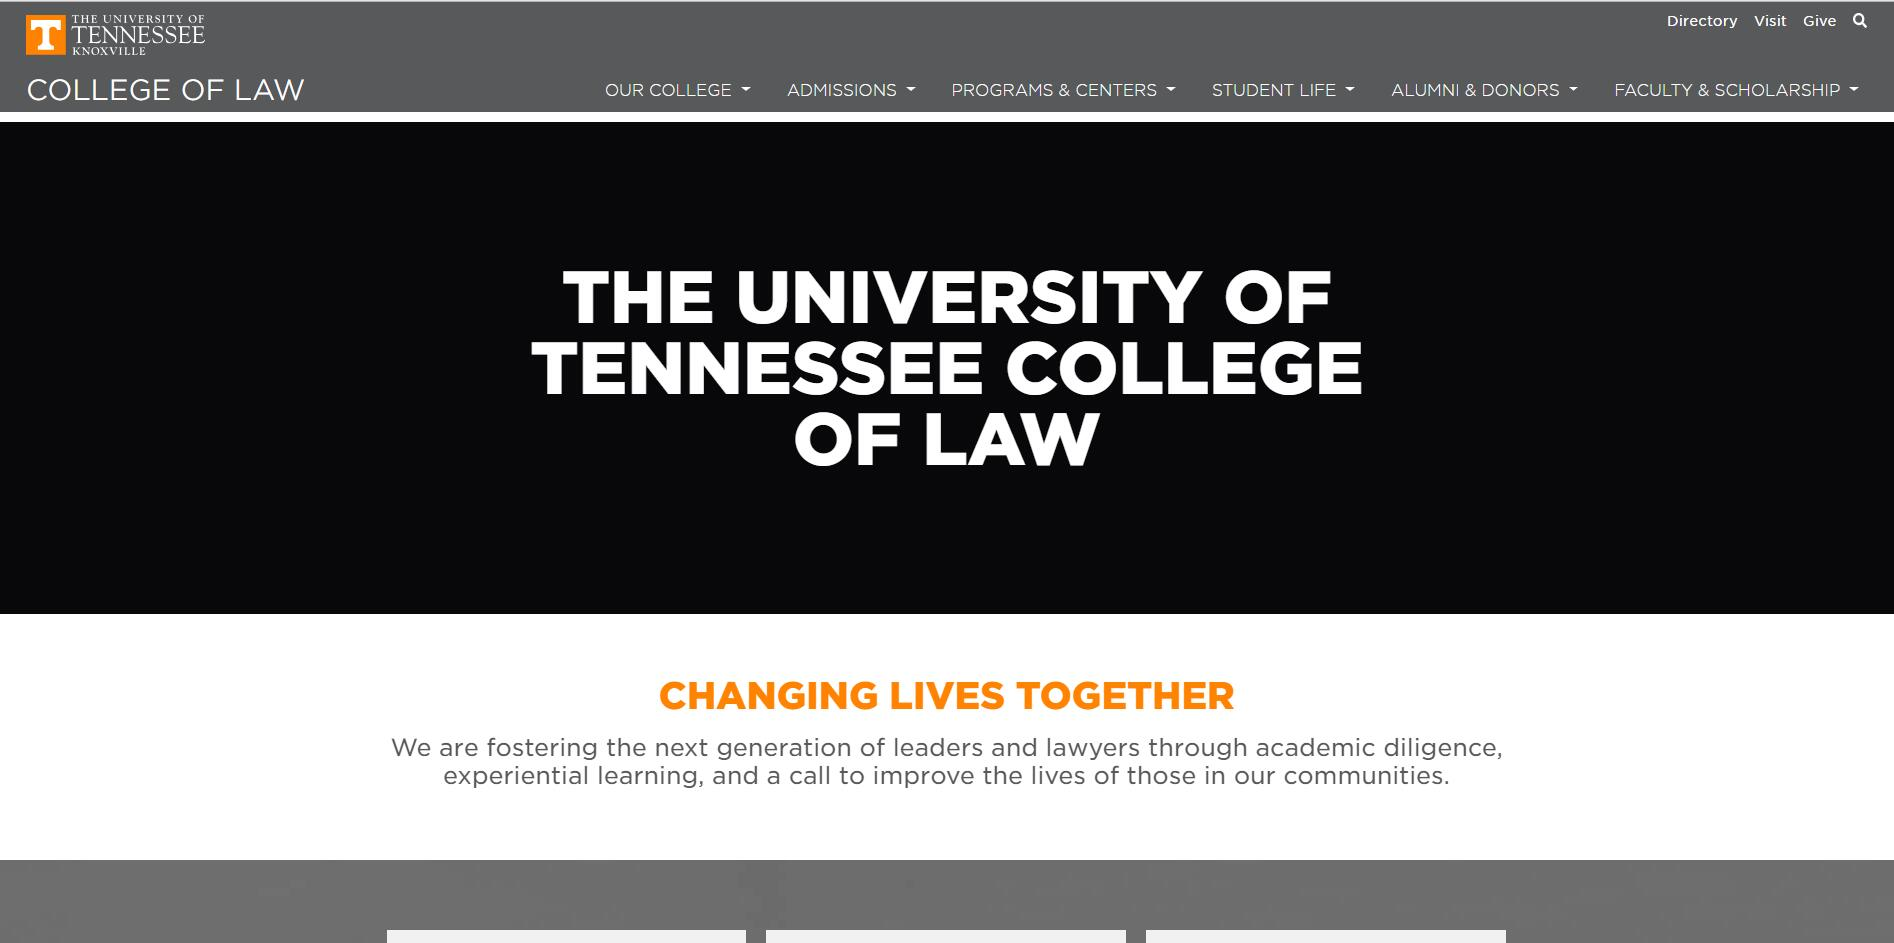 The College of Law at University of Tennessee